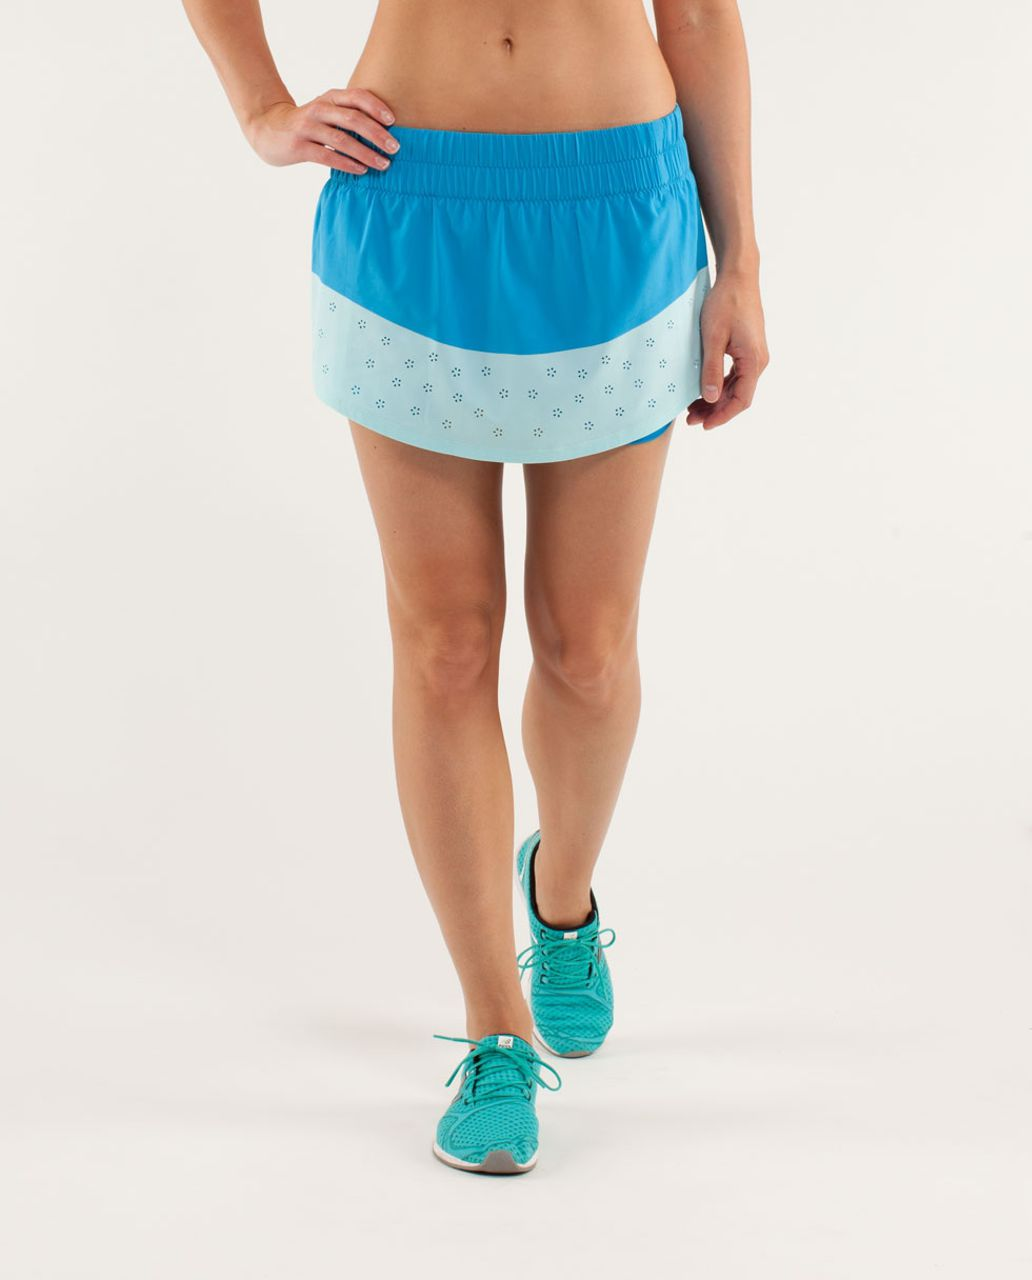 Lululemon Run:  Breeze By Skirt *Laser Cut - Beach Blanket Blue / Aquamarine / Wee Are From Space Aquamarine